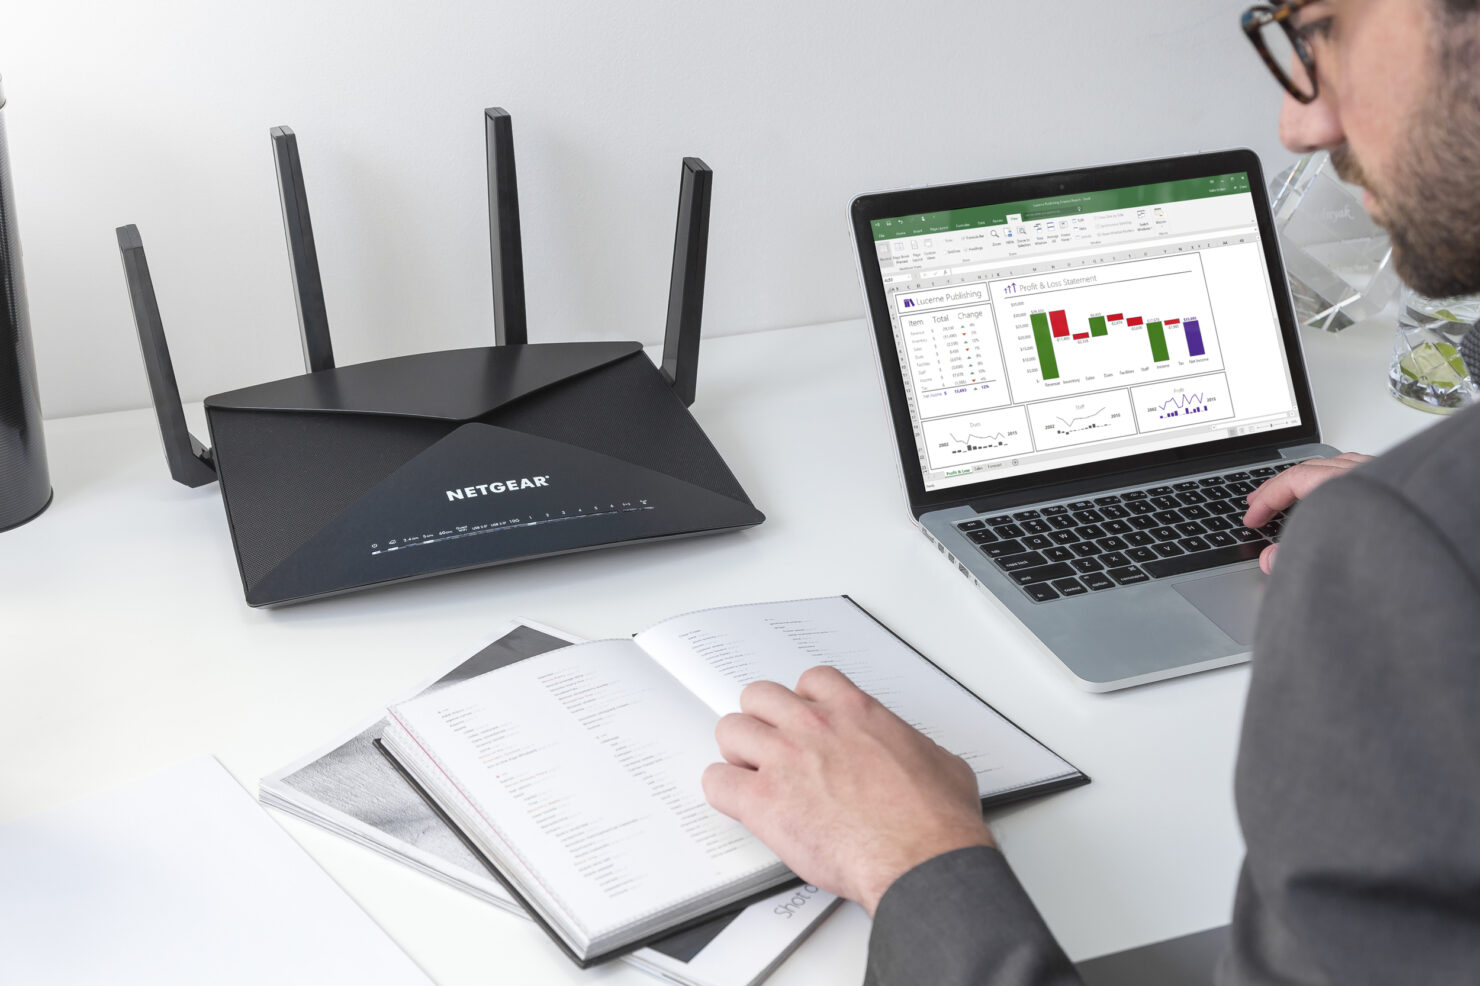 Netgear Nighthawk X10 Doubles as a Plex Media Server – Claims to Be the Fastest in the World